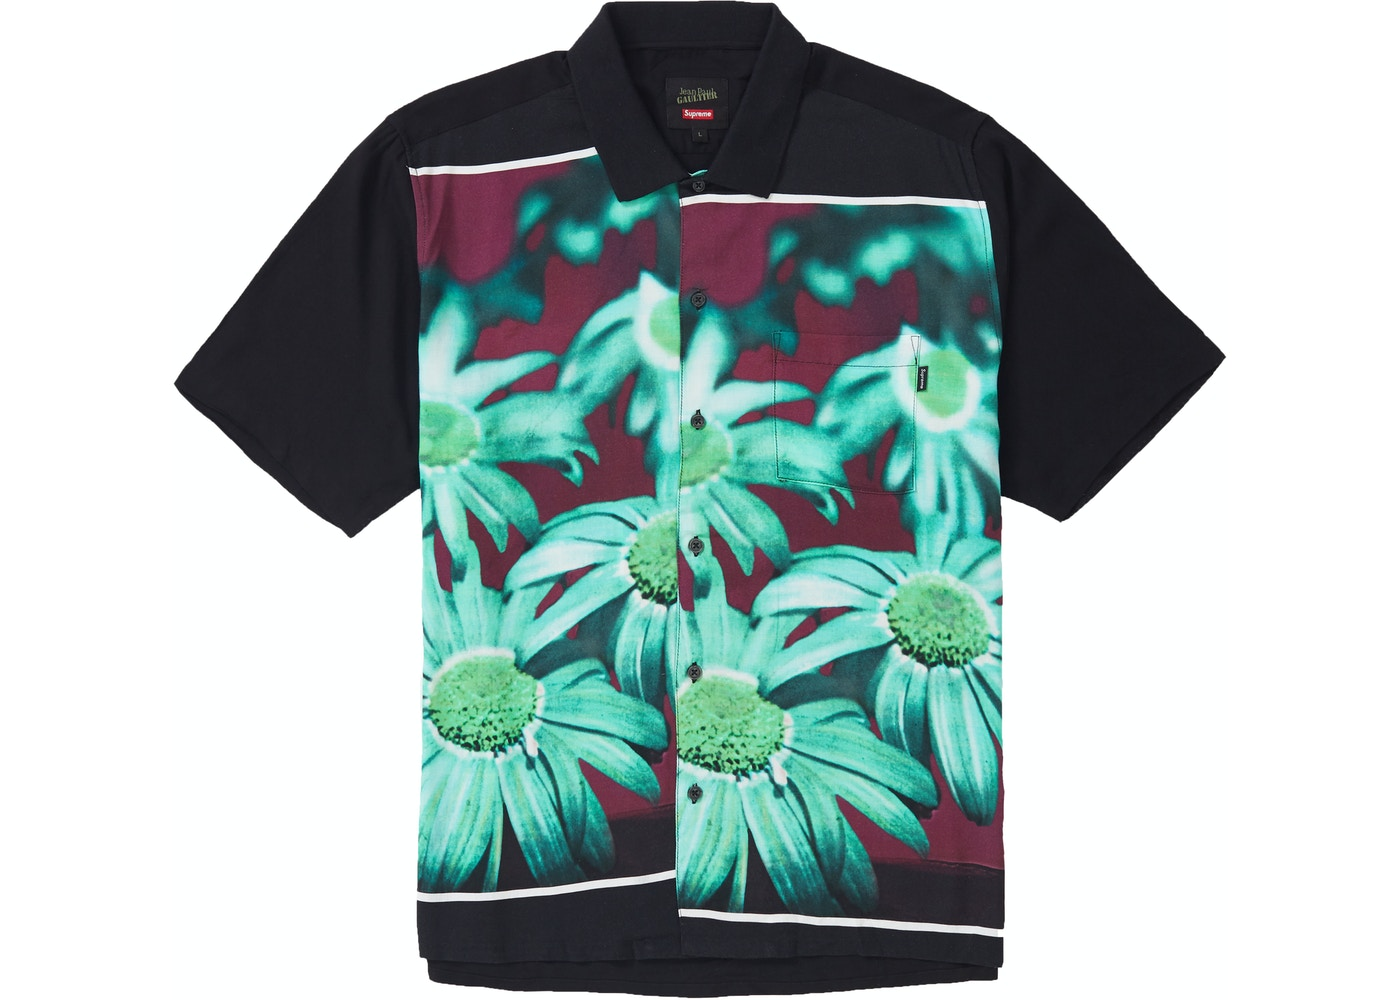 301451bfe18 Supreme Jean Paul Gaultier Flower Power Rayon Shirt Black - SS19